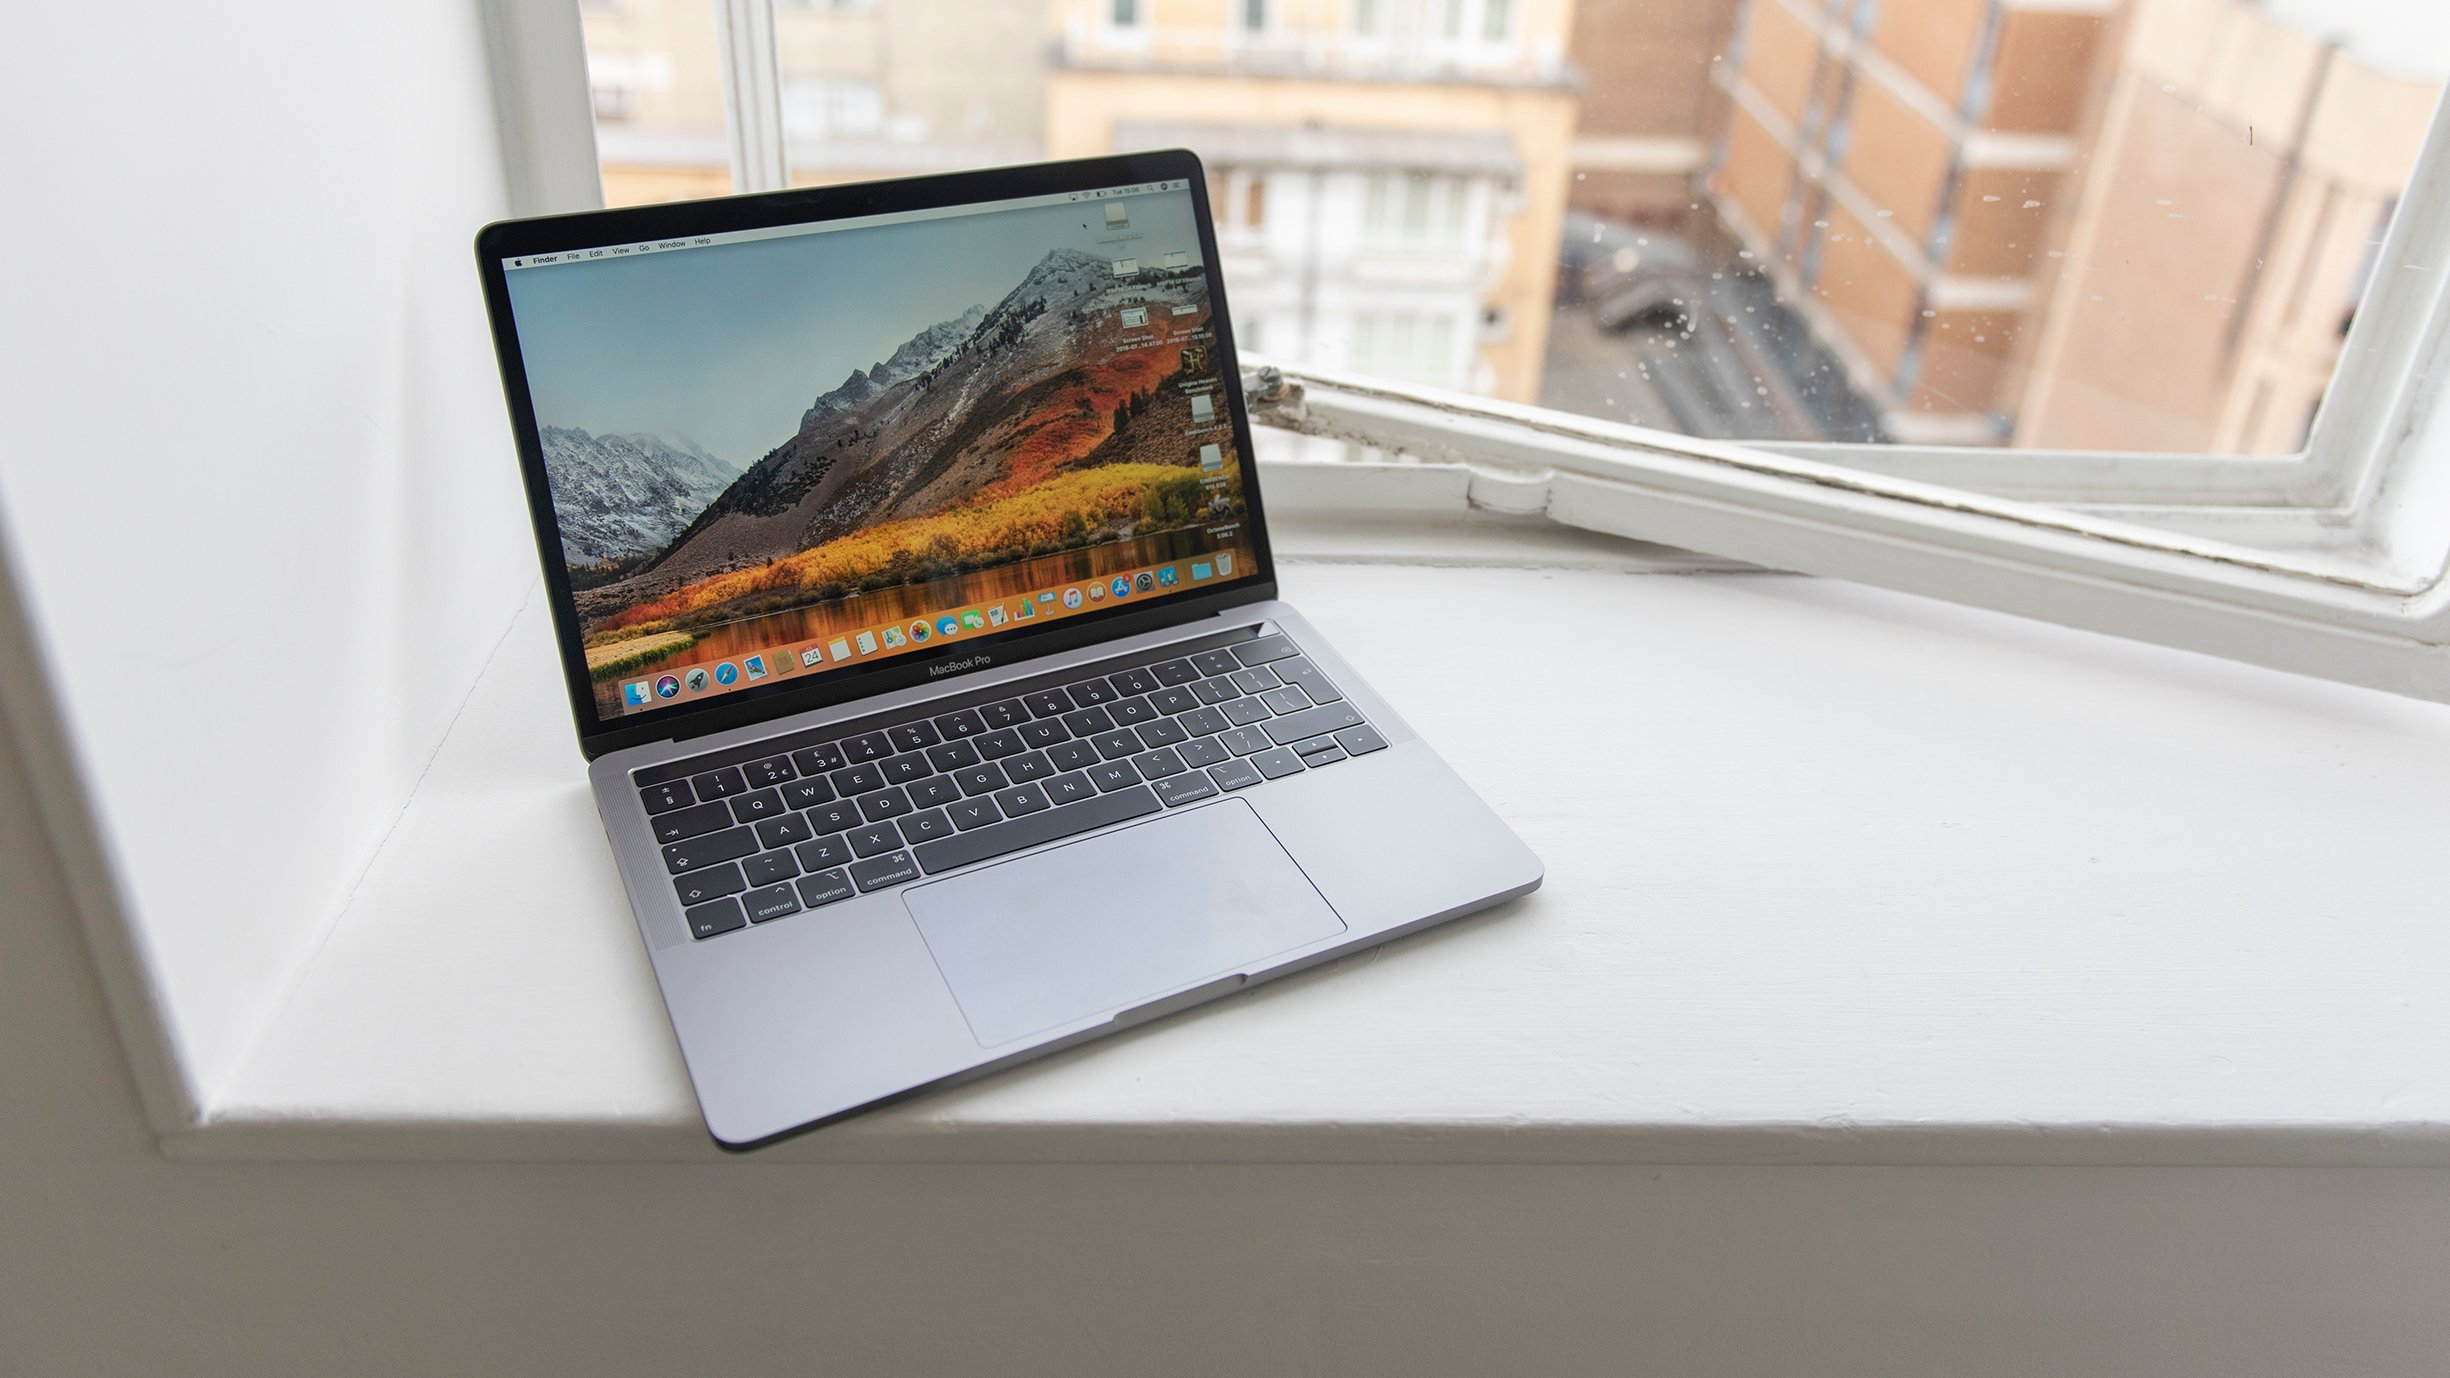 Macbook Pro Vs Macbook Air 2018 Which One Should You Buy Expert